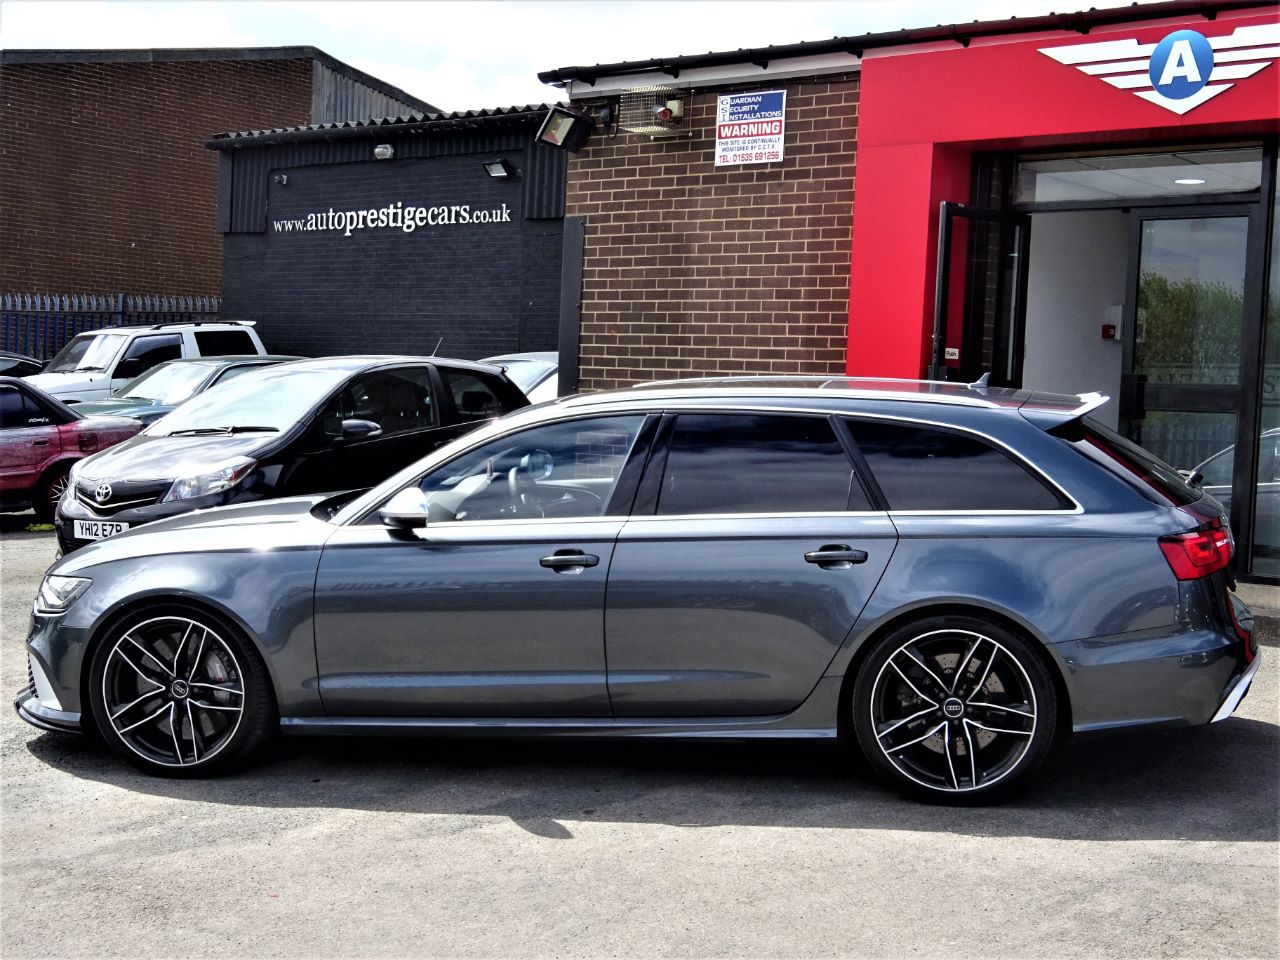 Audi RS6 4.0T FSI V8 Bi-Turbo RS6 Quattro 5dr Tip Auto WITH 20K WORTH OF EXTRAS CARBON BRAKES++++EXTRAS Estate Petrol Daytona Grey Pearl